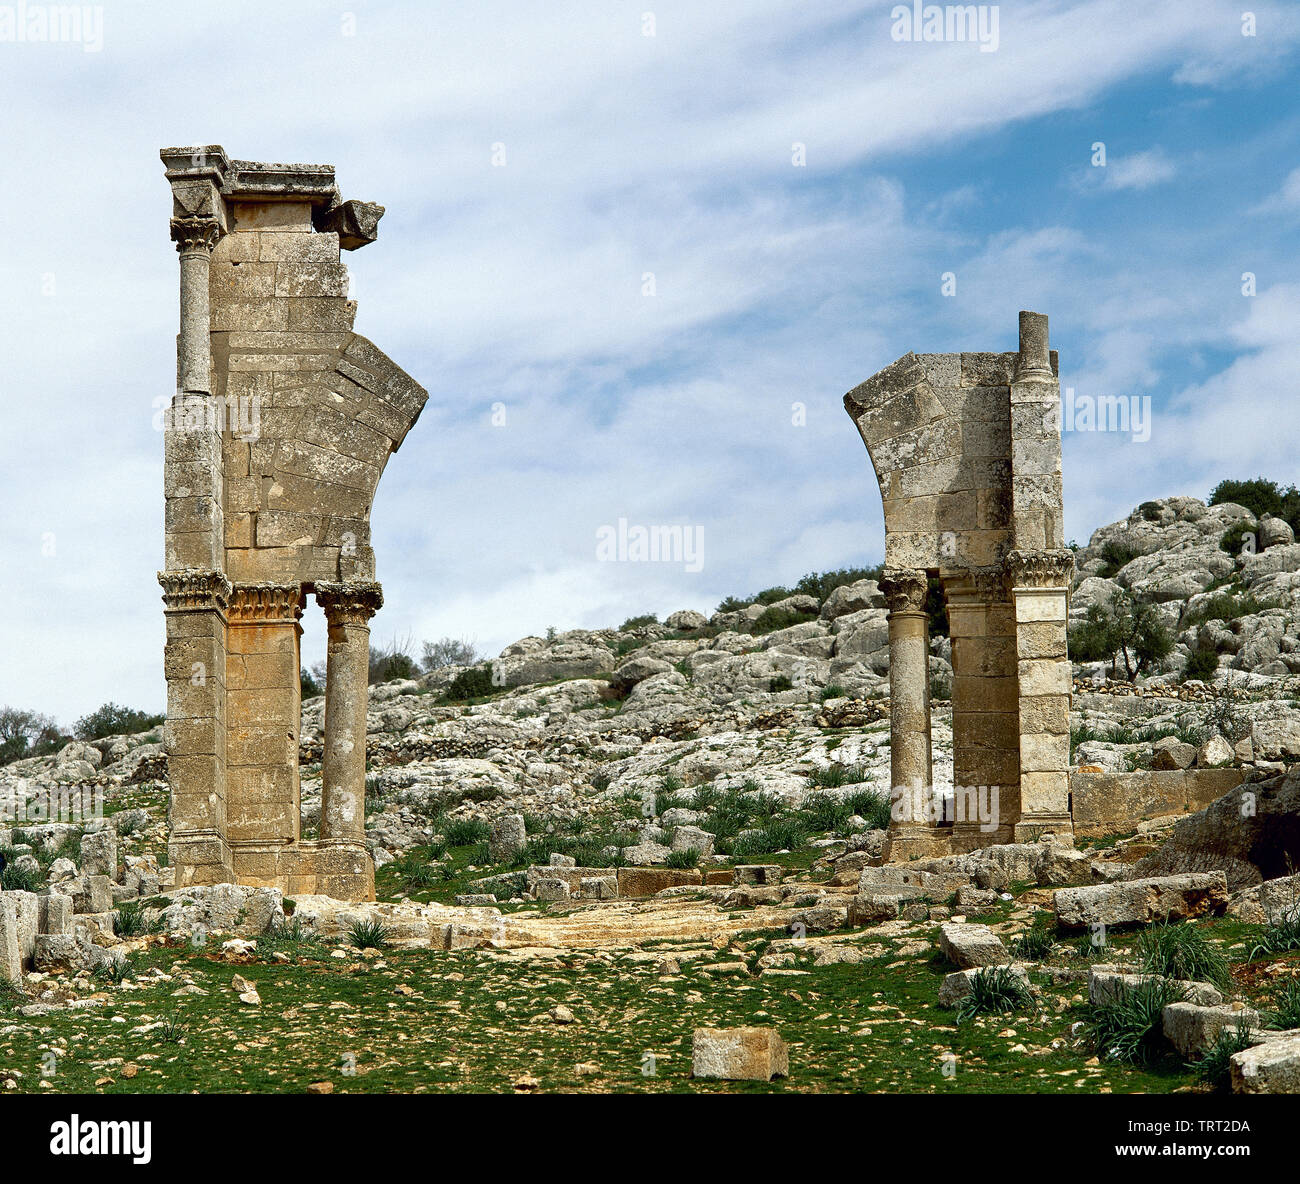 Syria. Aleppo. Church of Saint Simeon Stylites. Remains of the old door. Byzantine style. Historical photography (taken before the Syrian Civil War). - Stock Image